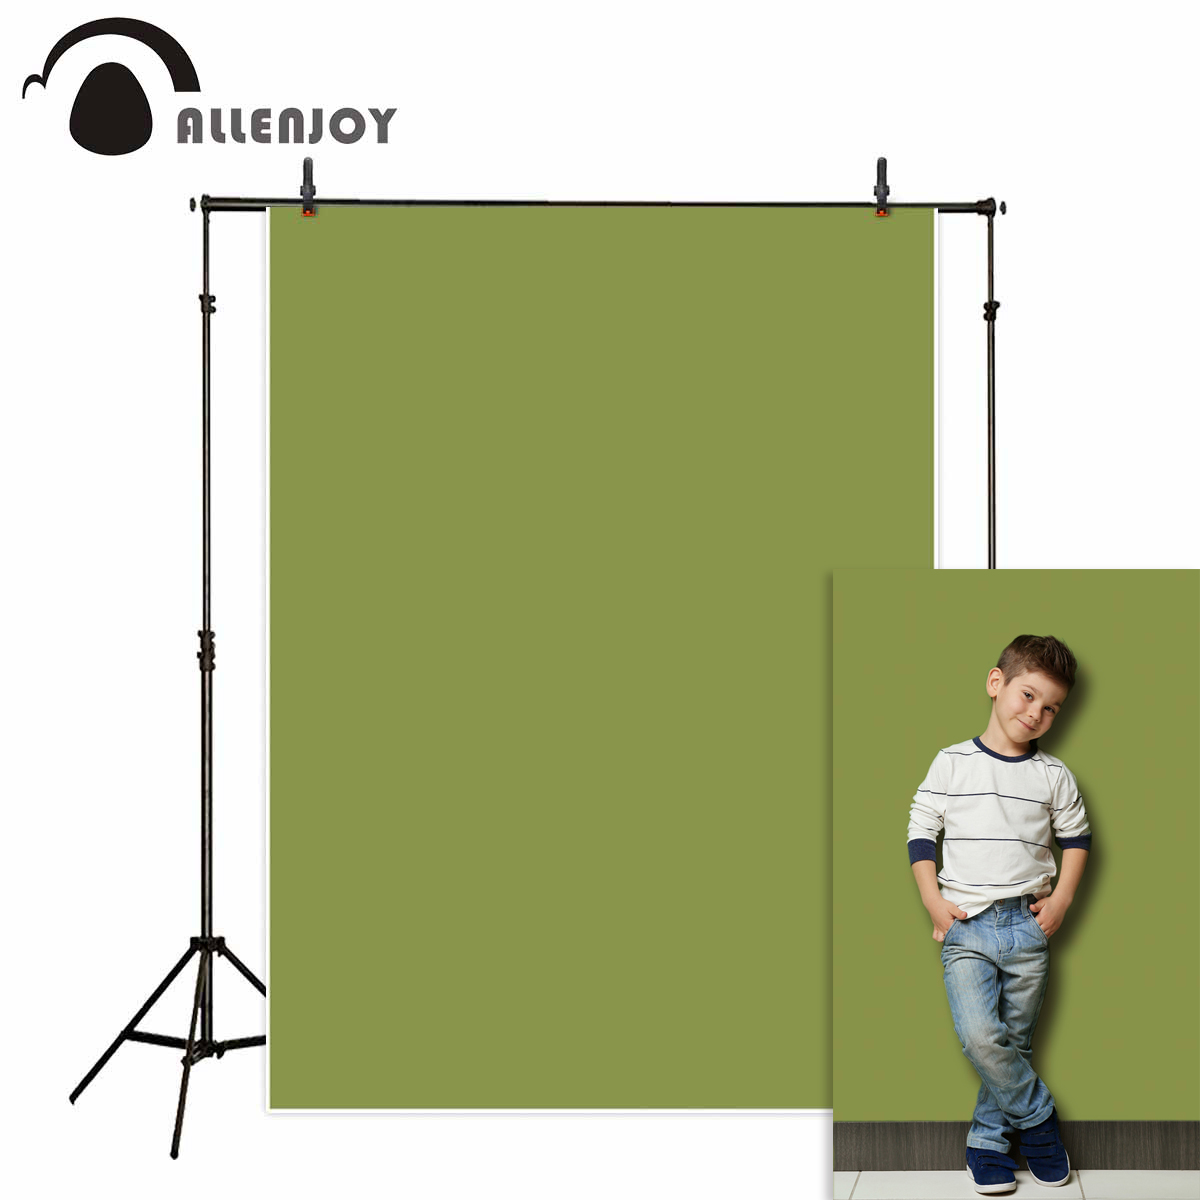 Allenjoy avocado green background pure color portrait shooting photography photo studio backdrop photobooth photozone photophone